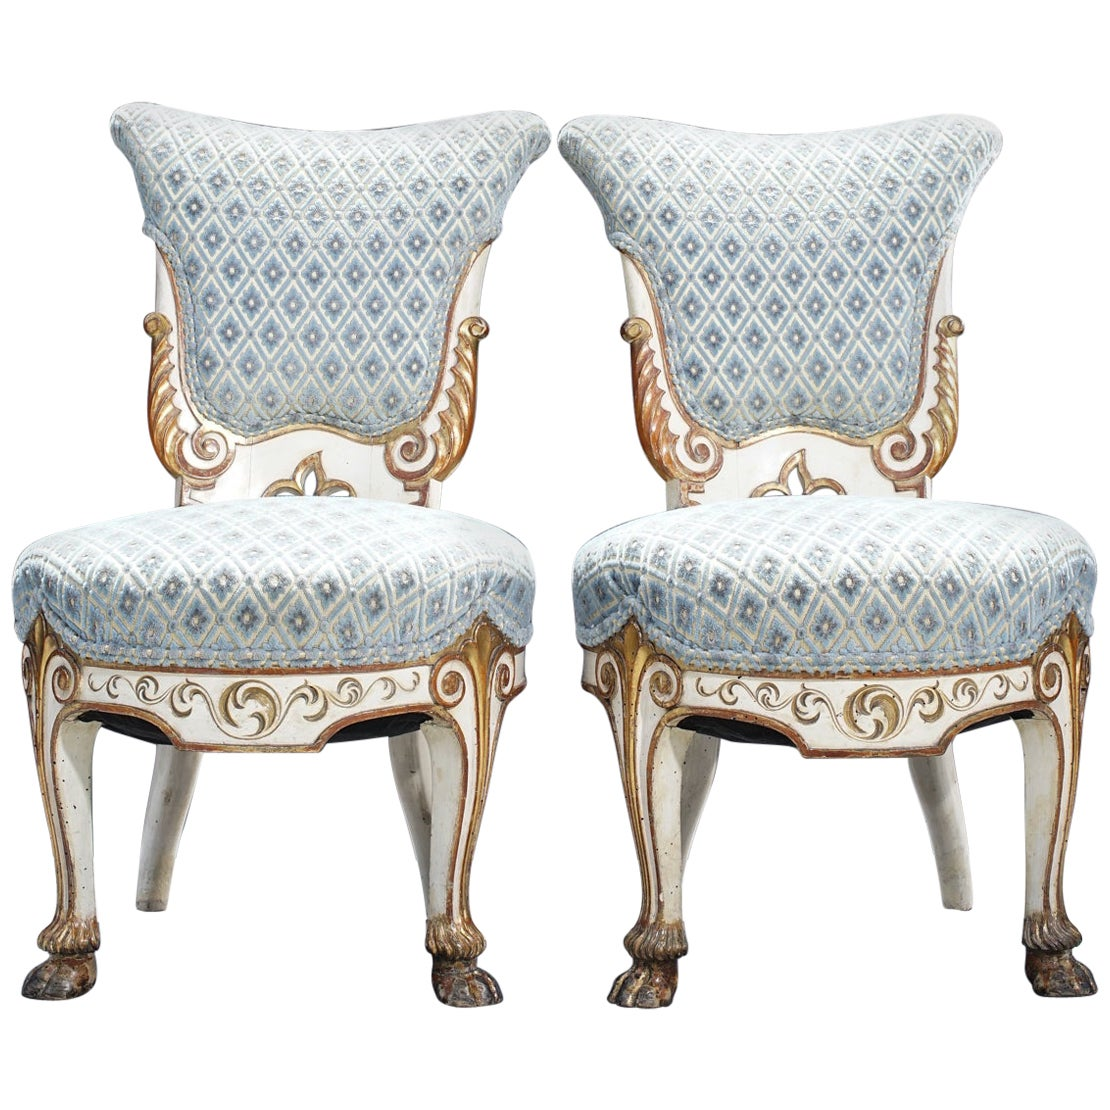 Pair of 19th Century Italian Giltwood and Painted Side Chairs